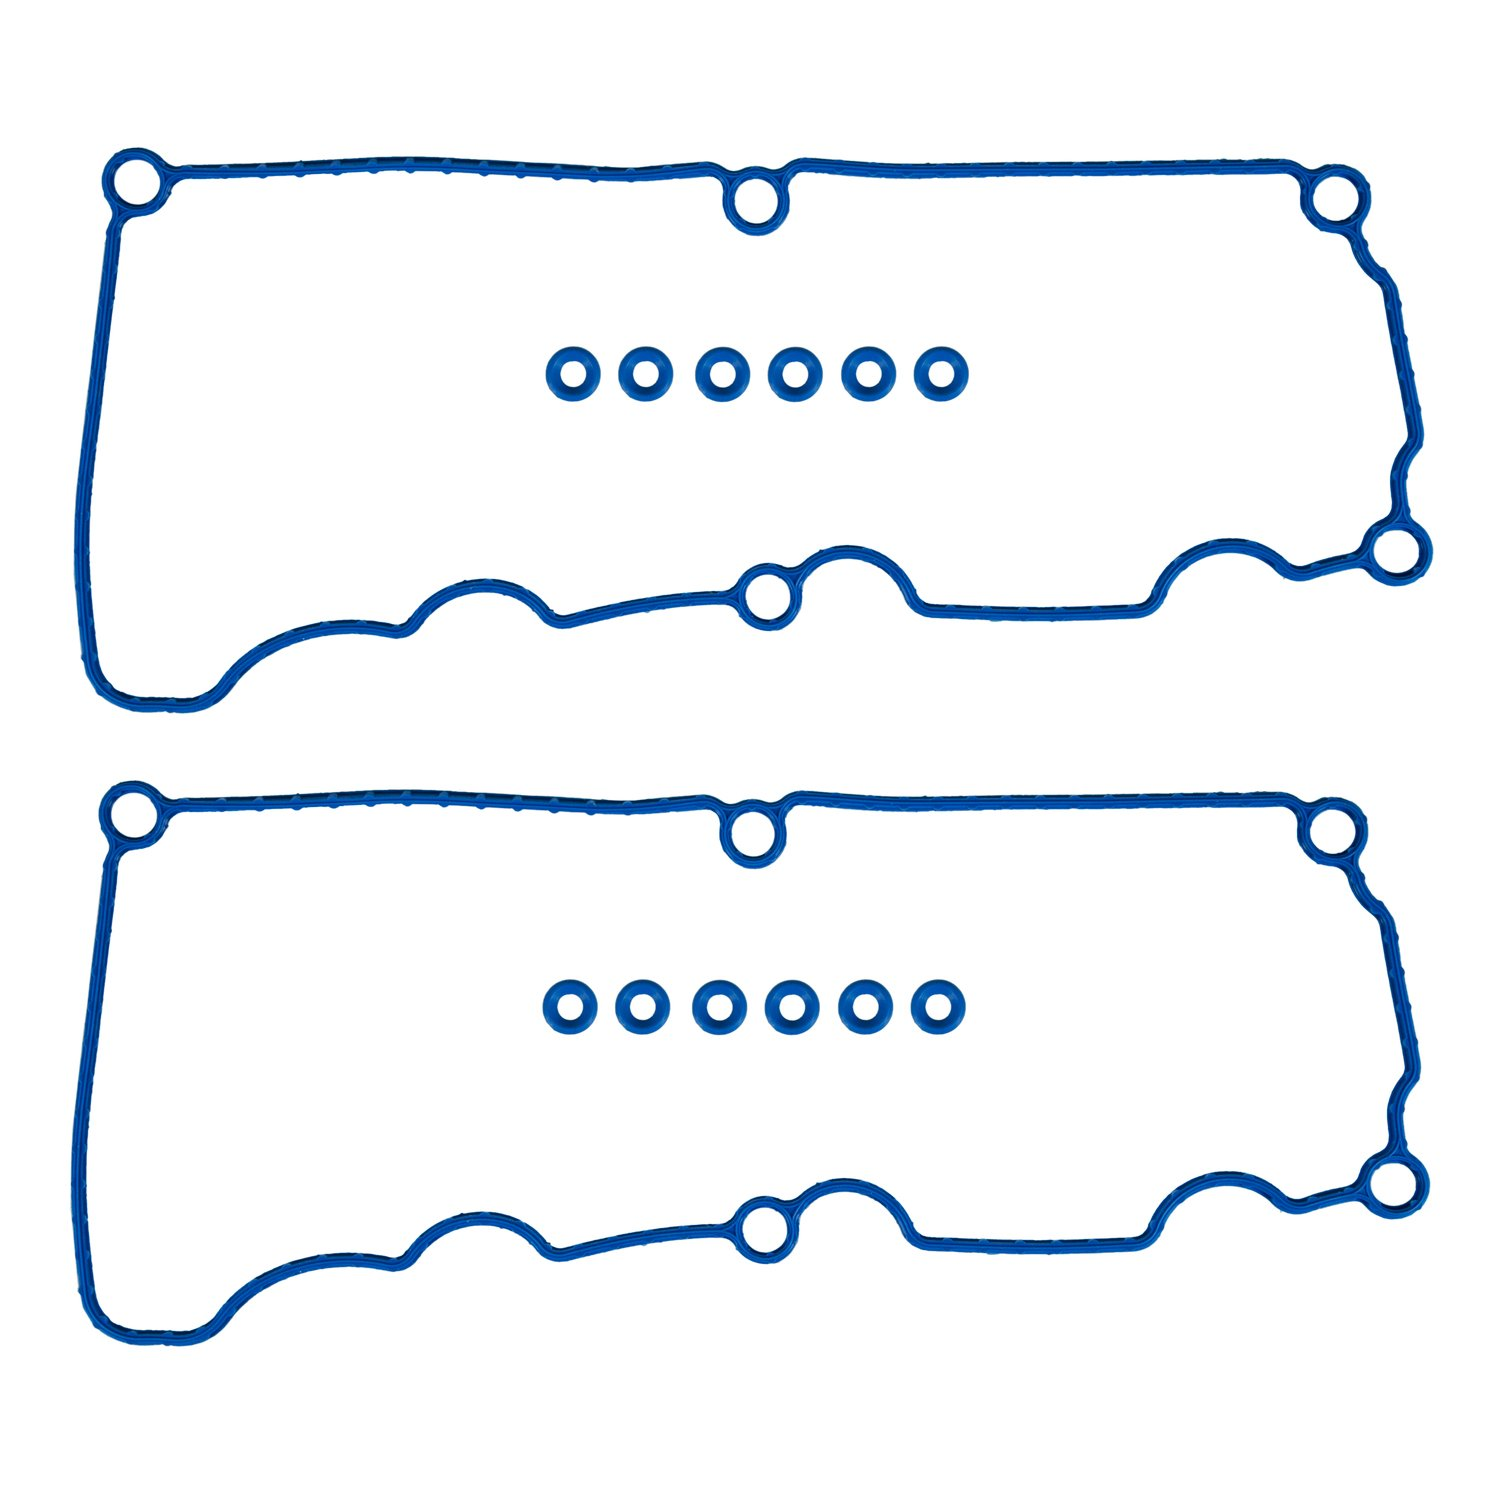 hight resolution of 2006 ford explorer engine valve cover gasket set fp vs 50529 r